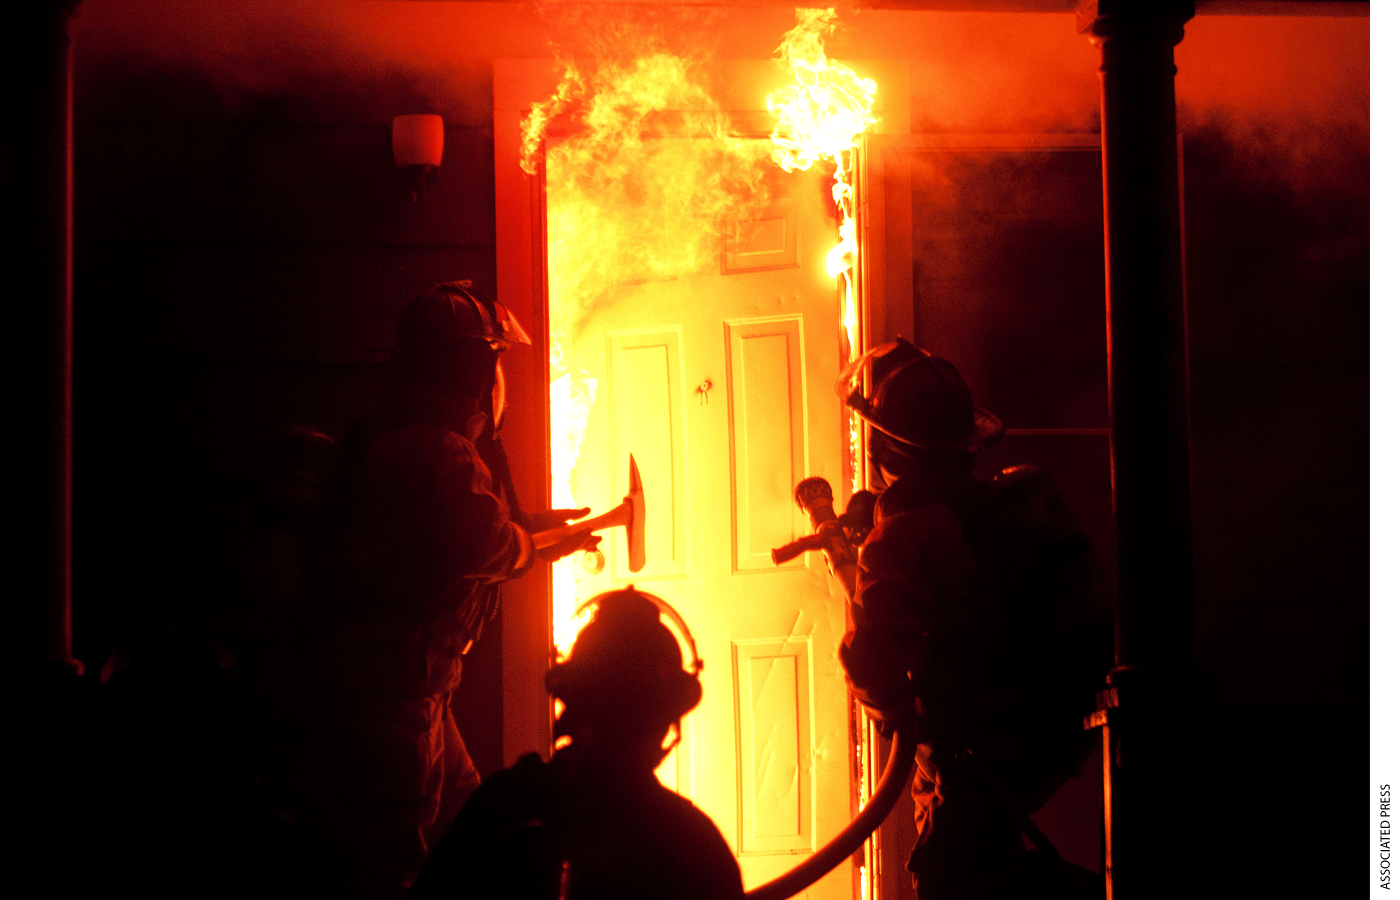 In a Monday, Sept. 17, 2012 photo, Saginaw fire fighters enter a house on the corner of Jackson and Fayette in Saginaw about 11:30 pm.